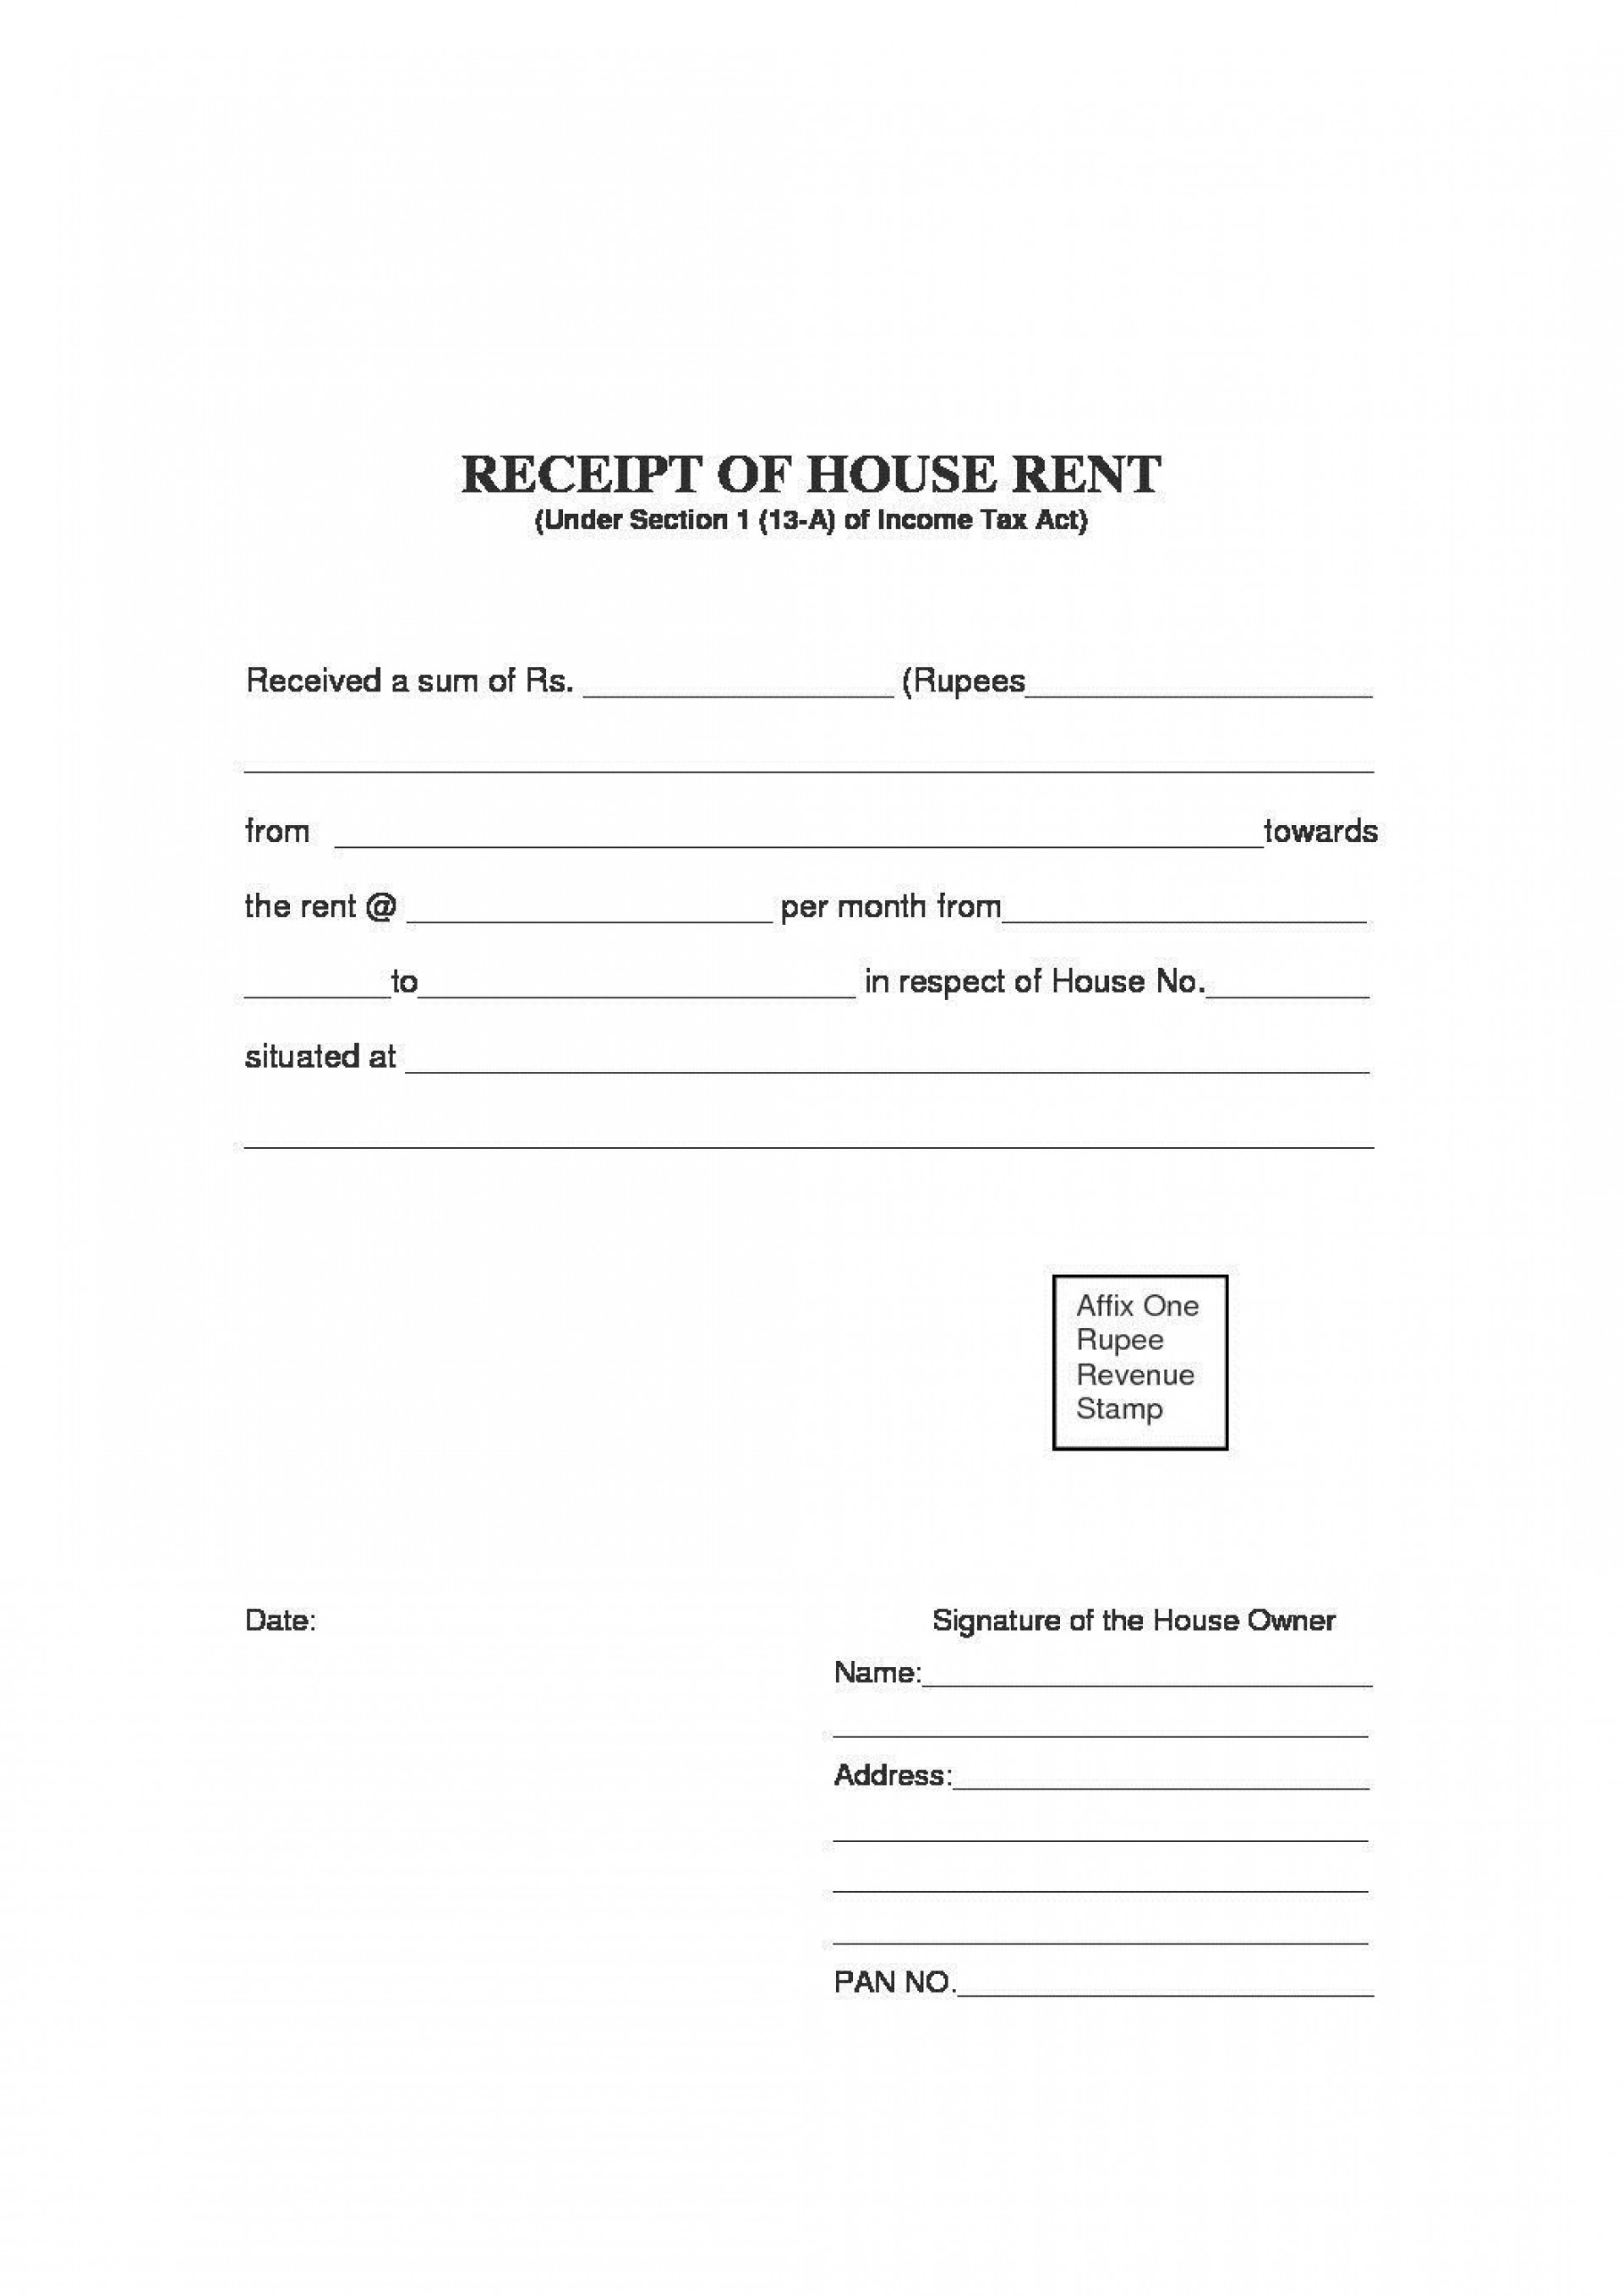 000 Magnificent Rent Payment Receipt Template High Definition  Excel Free1920